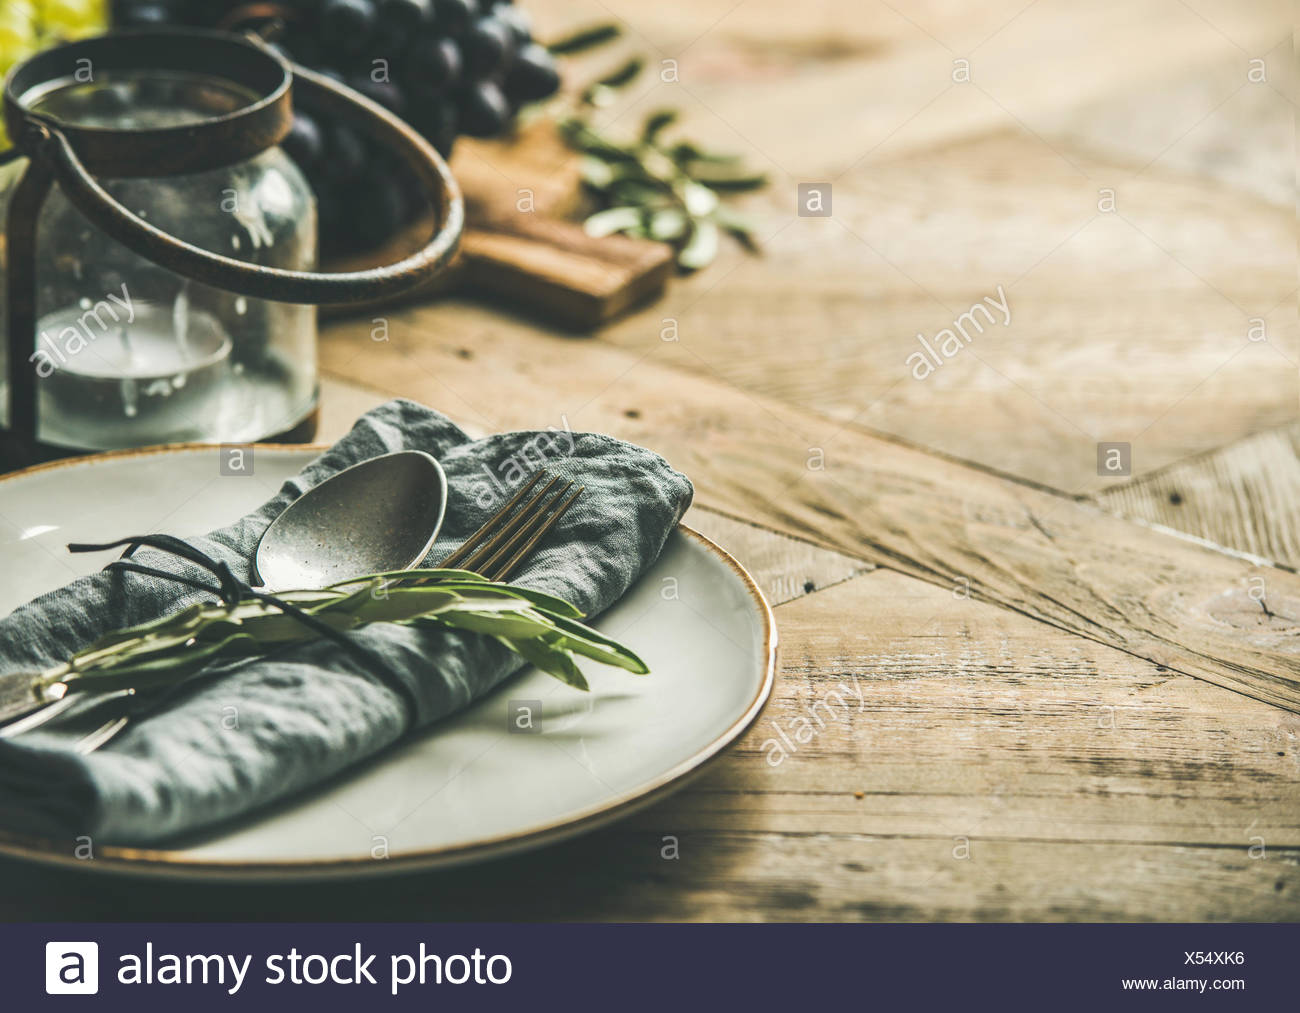 Fall Holiday Table Party Decoration Setting Plate With Linen Napkin Fork Spoon Candle Holder Grapes On Board Buns Olive Tree Branch Over Wooden Stock Photo Alamy